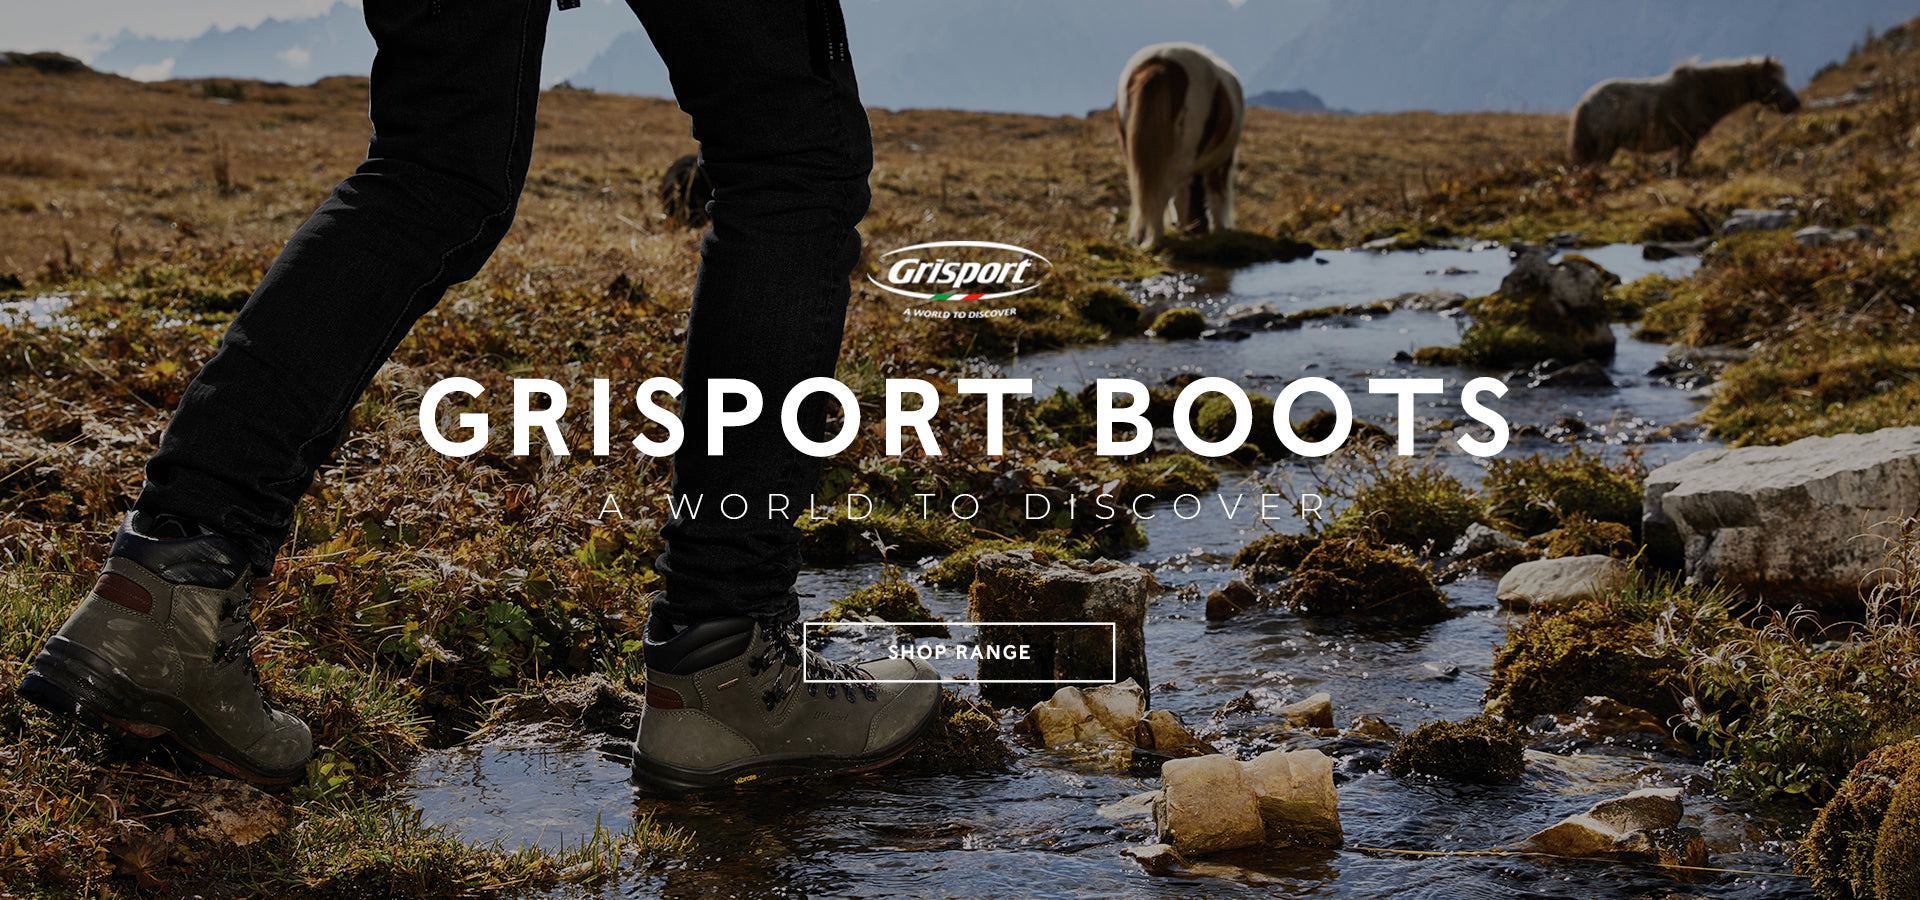 GRISPORT BOOTS. A world to discover